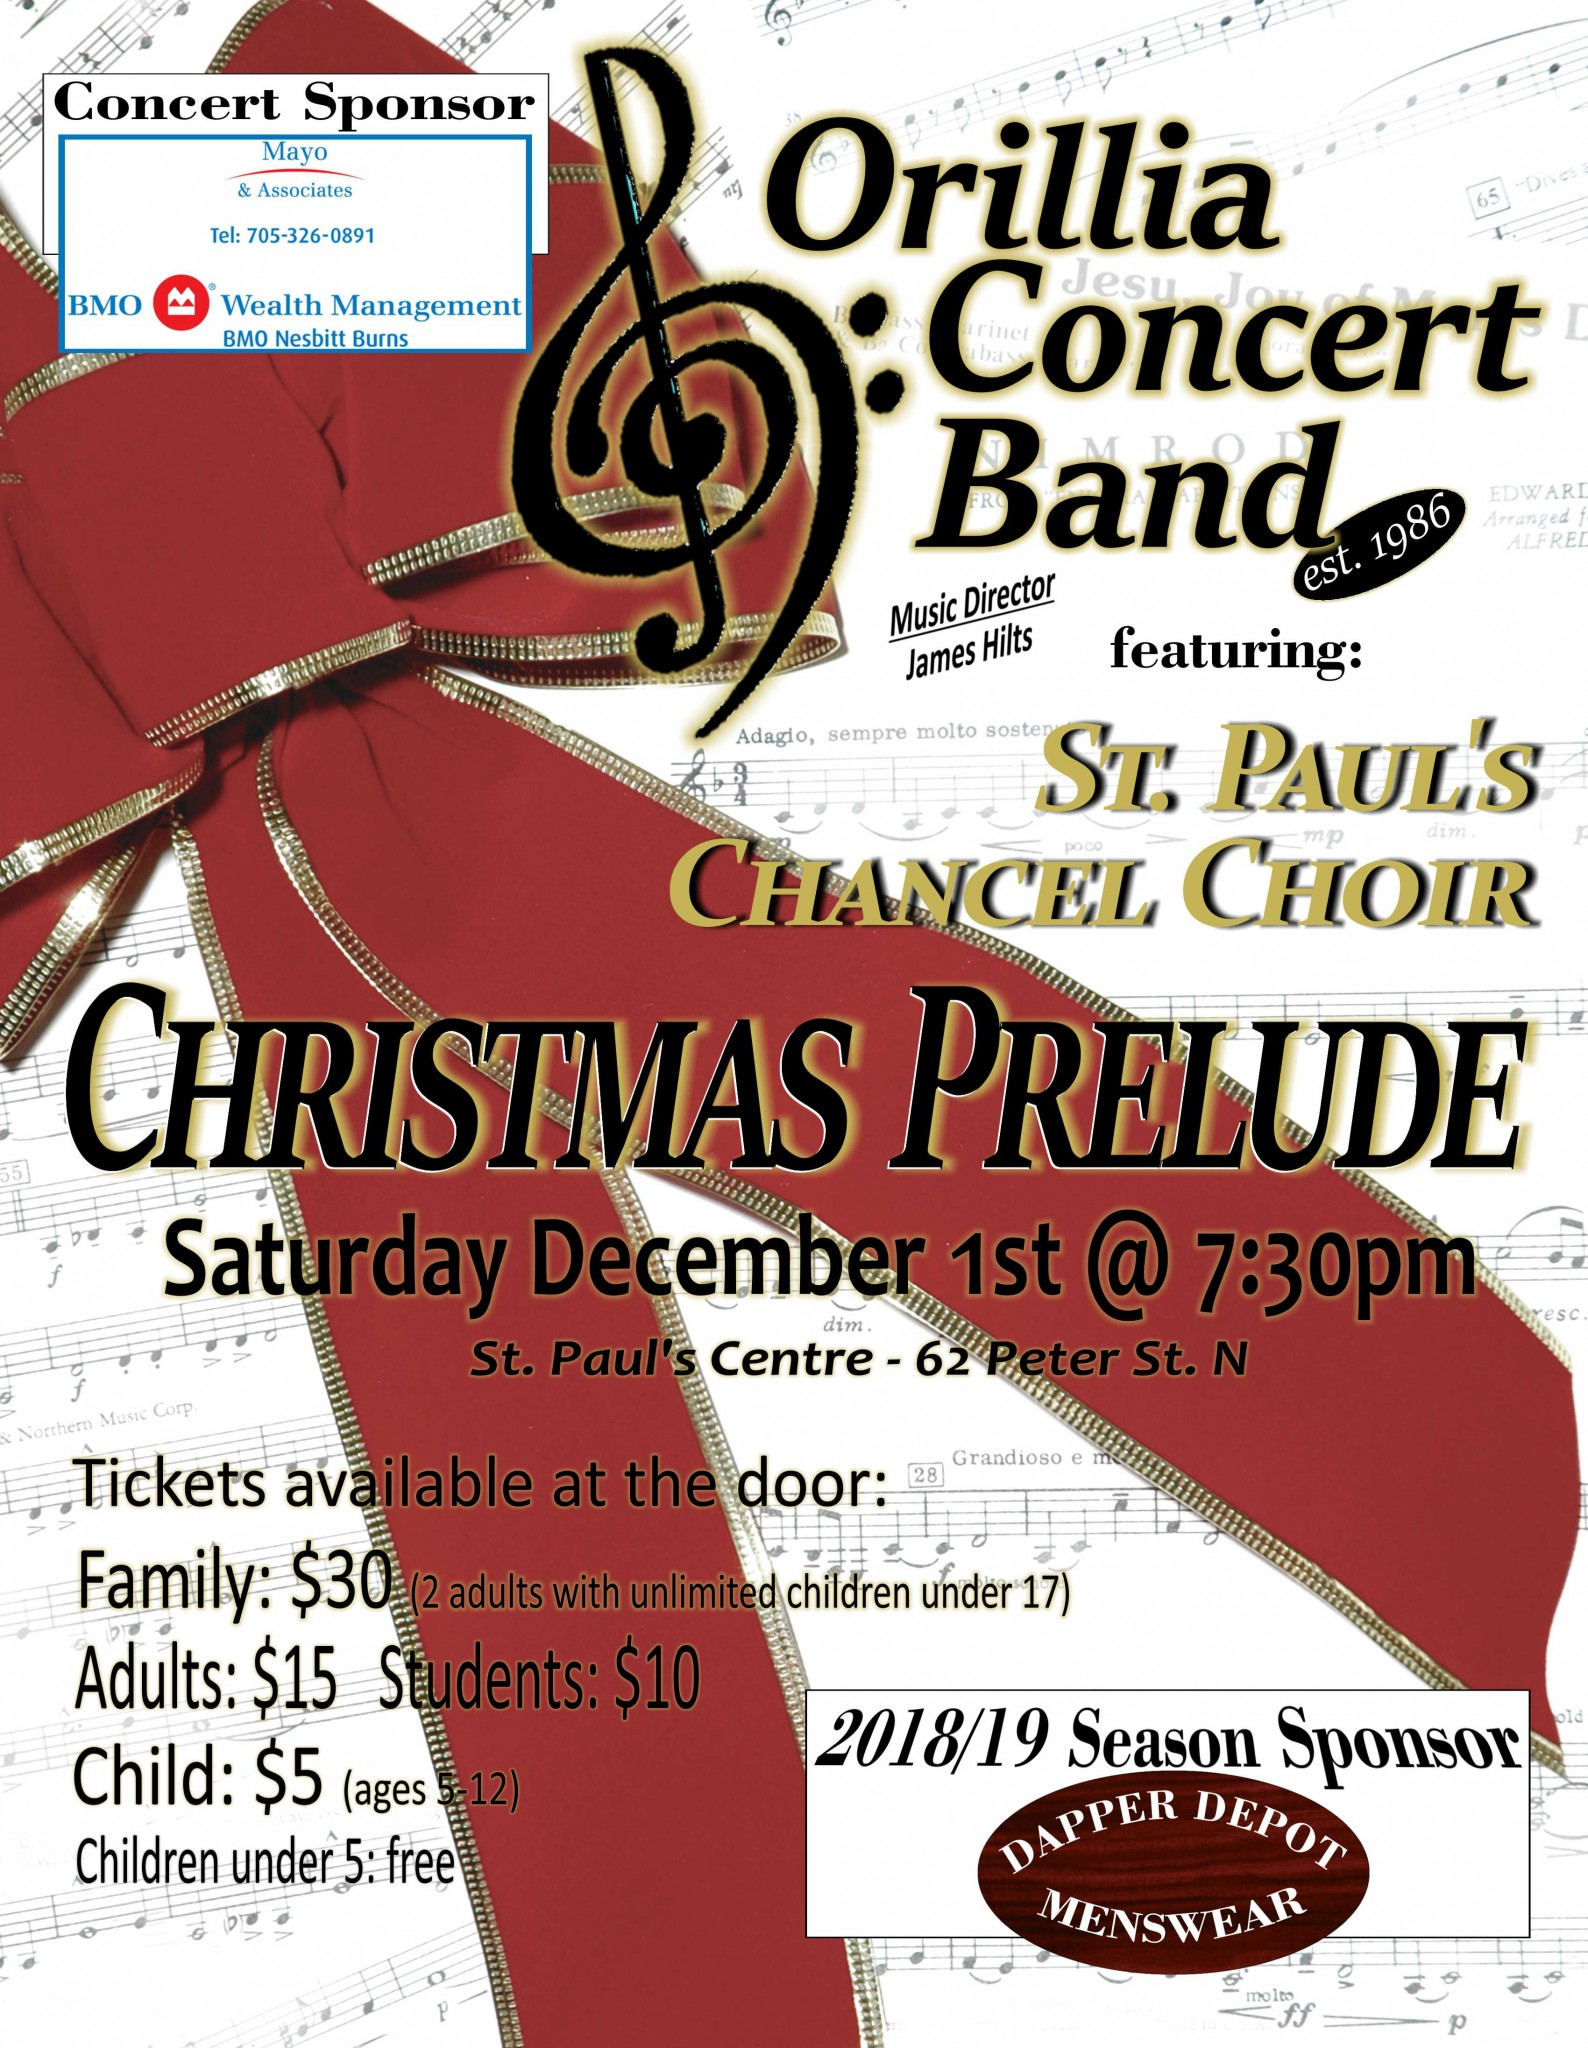 Evening Poster - Orillia Concert Band Christmas Prelude